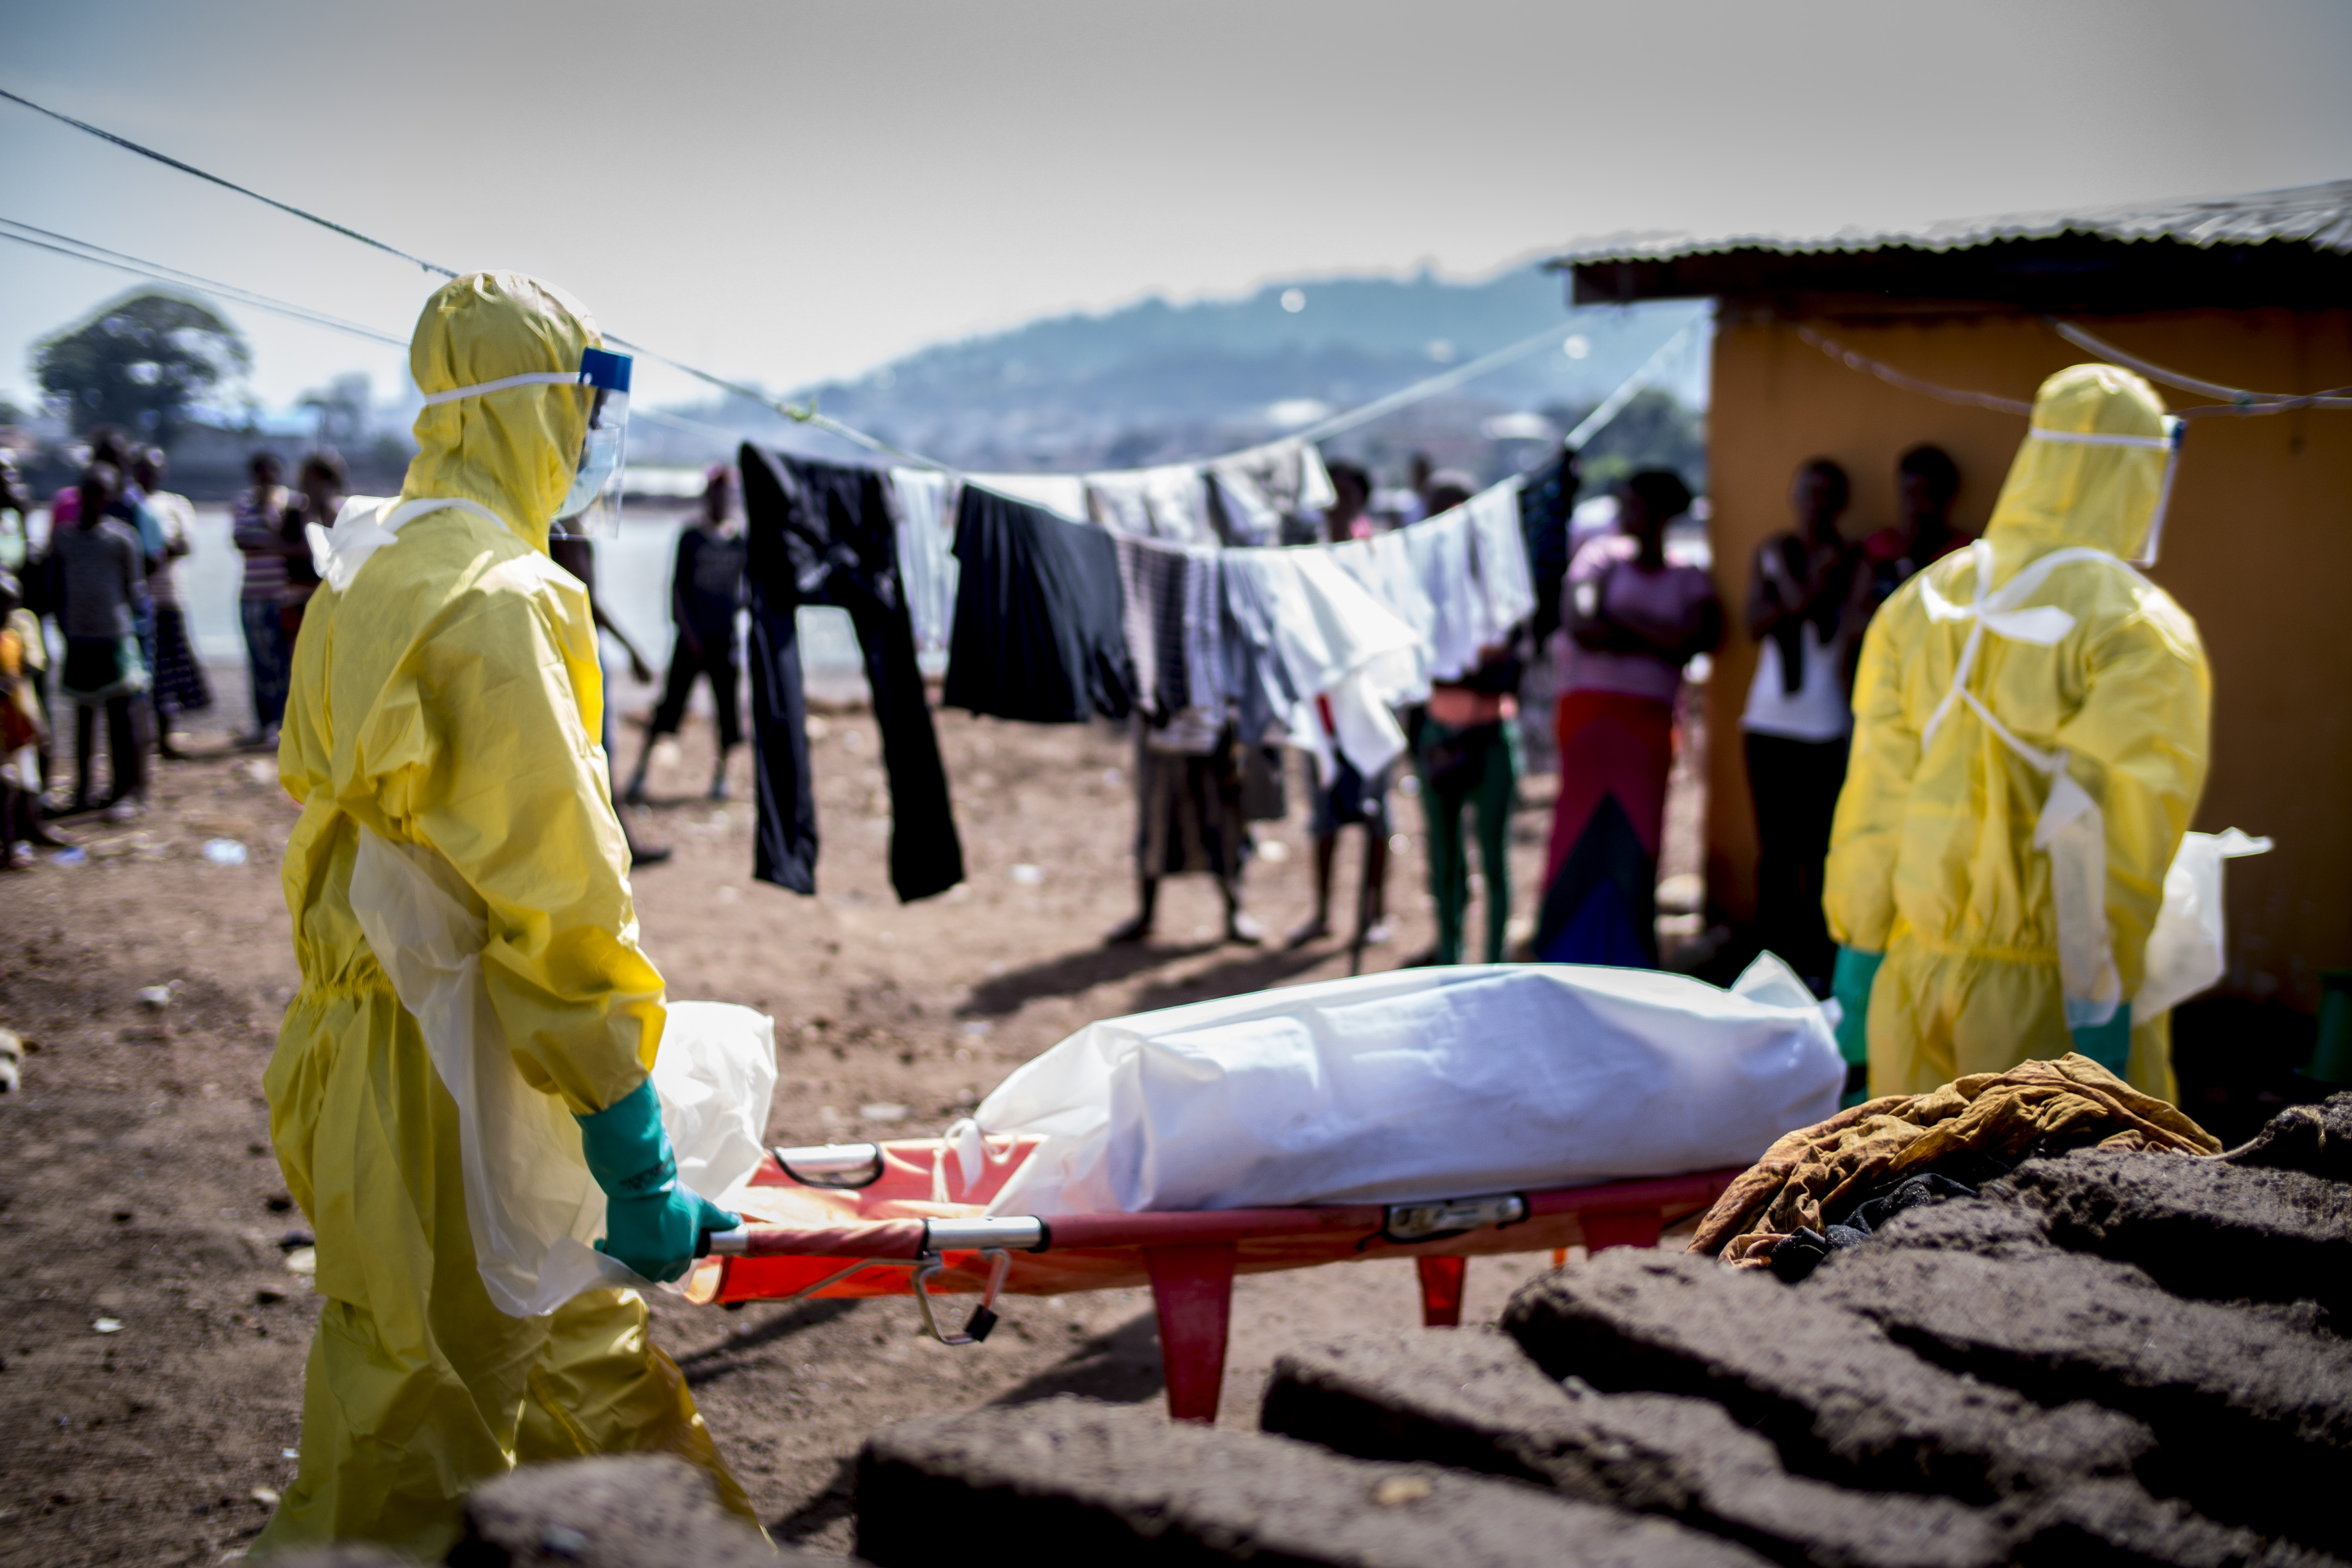 Two men in protective outfits carry the body of an Ebola victim.